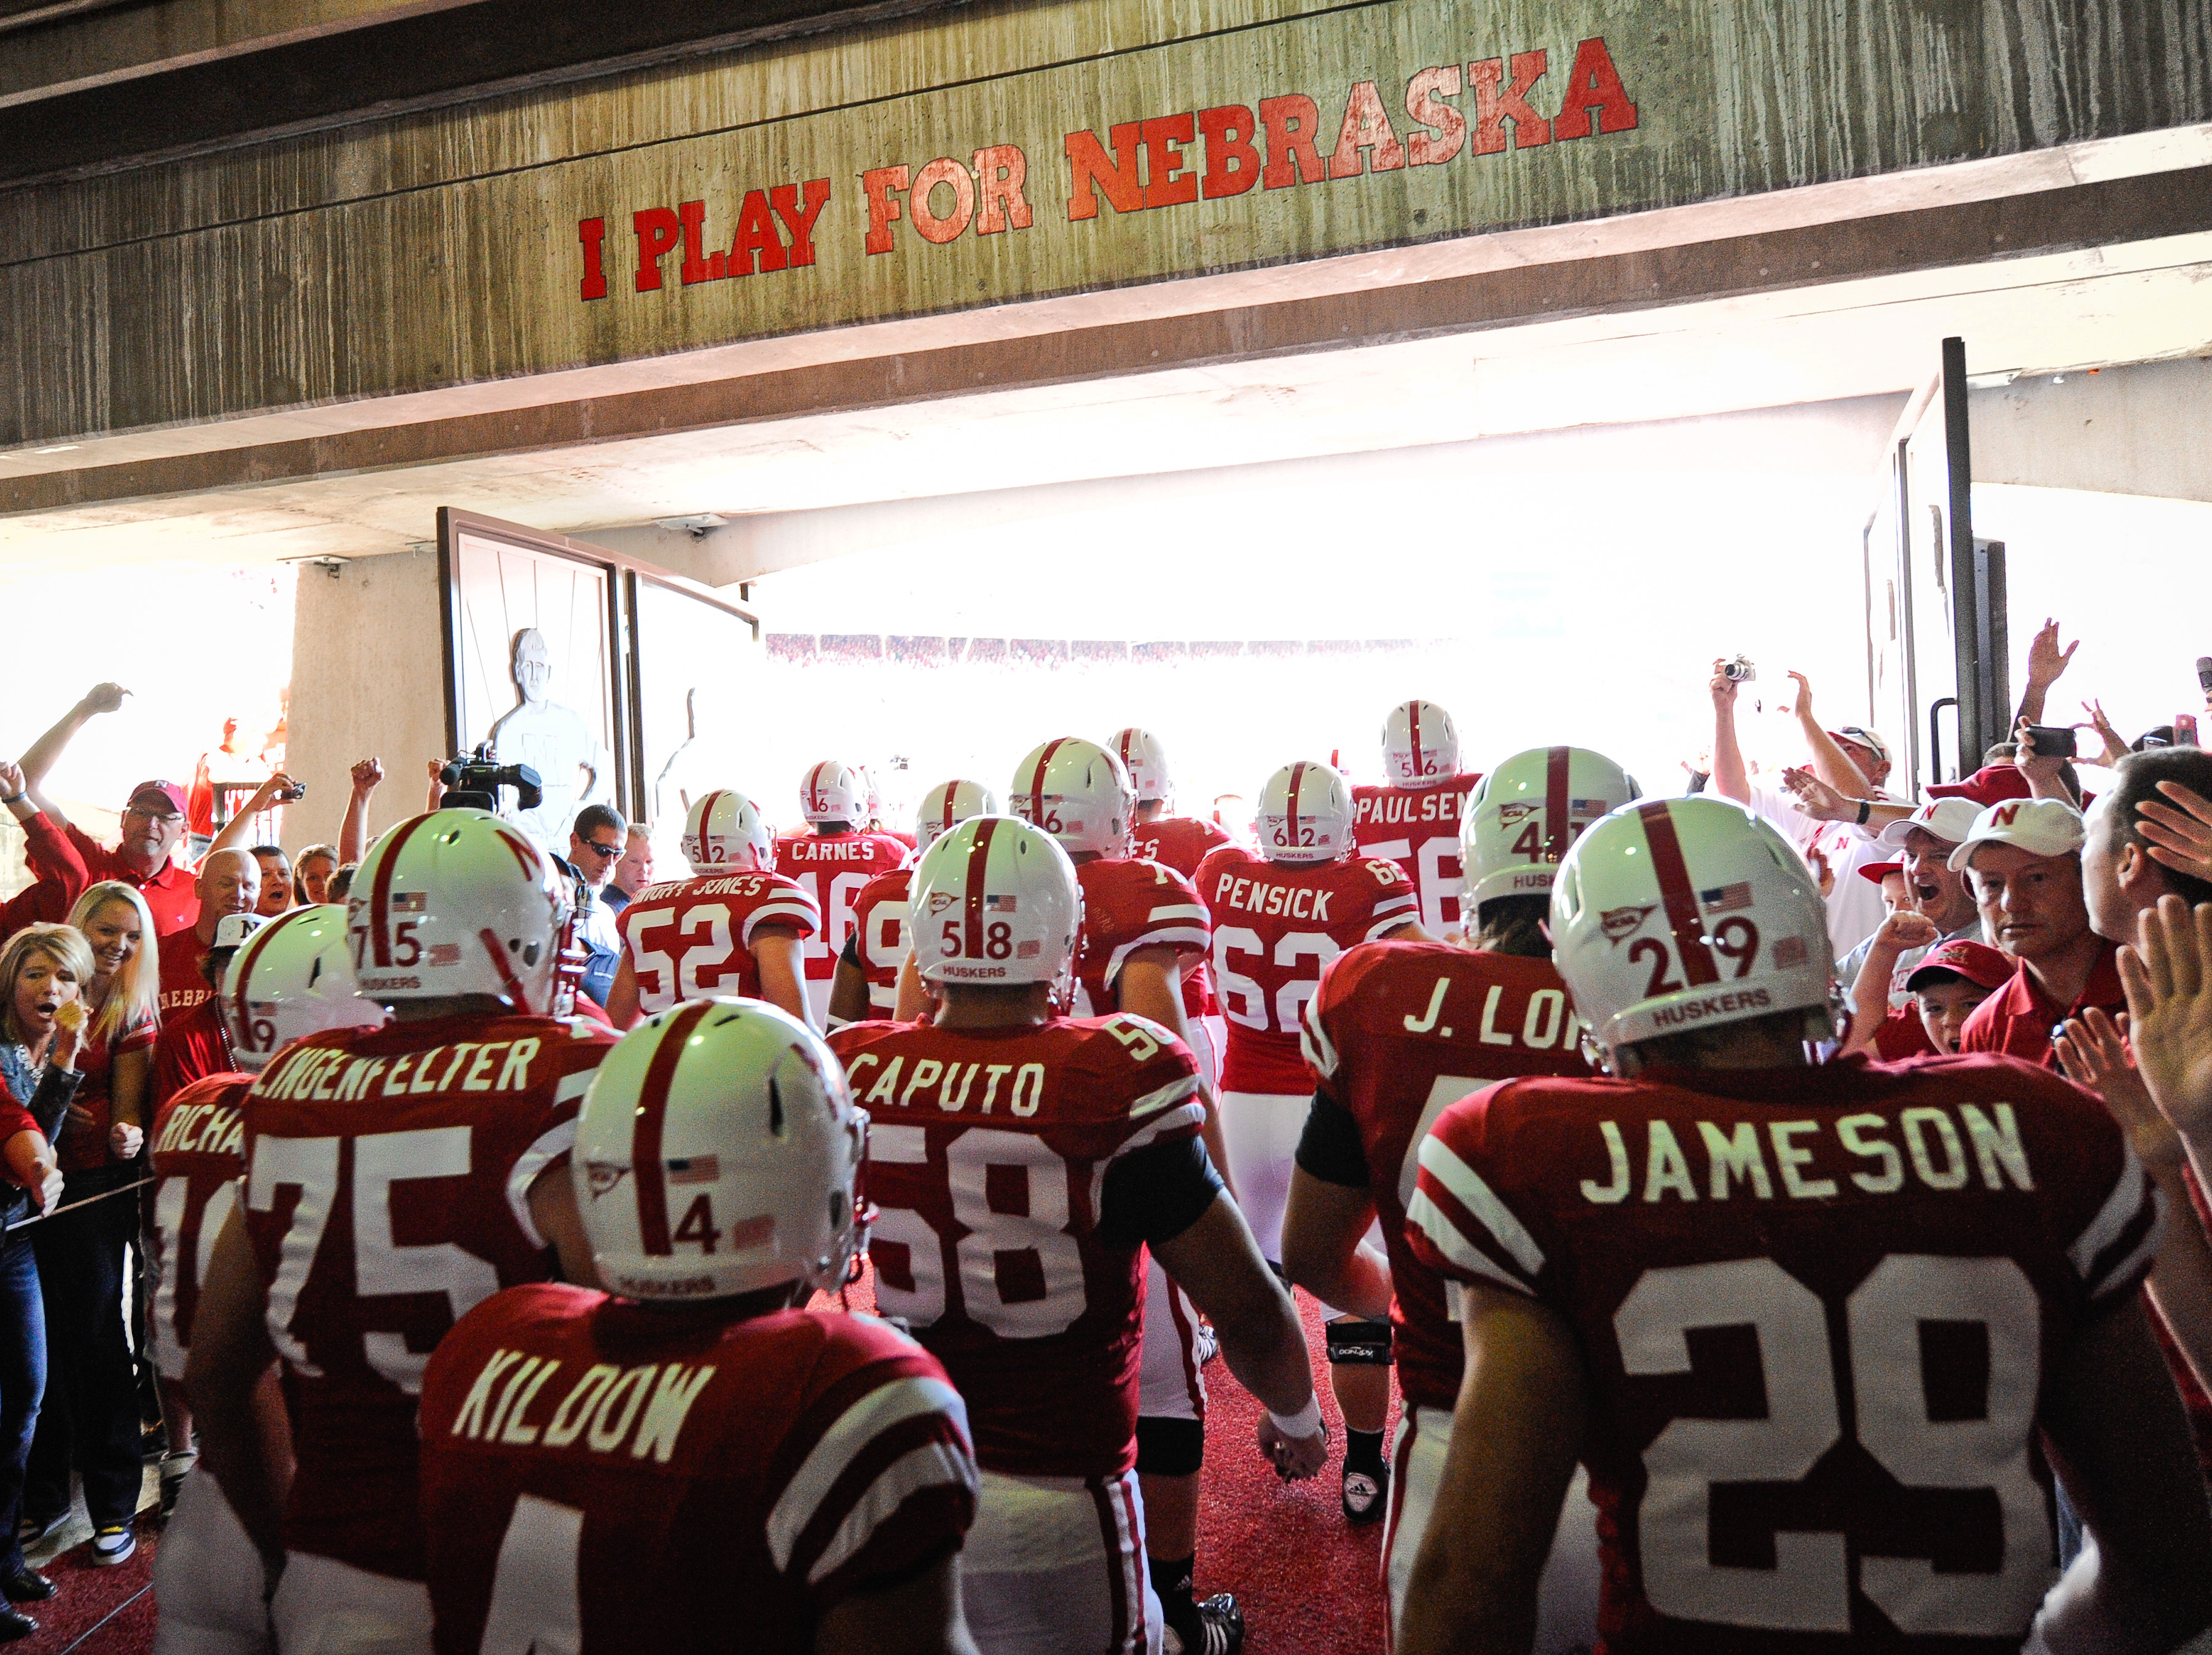 LINCOLN, NE - OCTOBER 16: The Nebraska Cornuskers run through a gauntlet of fans as they take the field against the Texas Longhorns at Memorial Stadium on October 16, 2010 in Lincoln, Nebraska. Texas Defeated Nebraska 20-13. (Photo by Eric Francis/Getty I